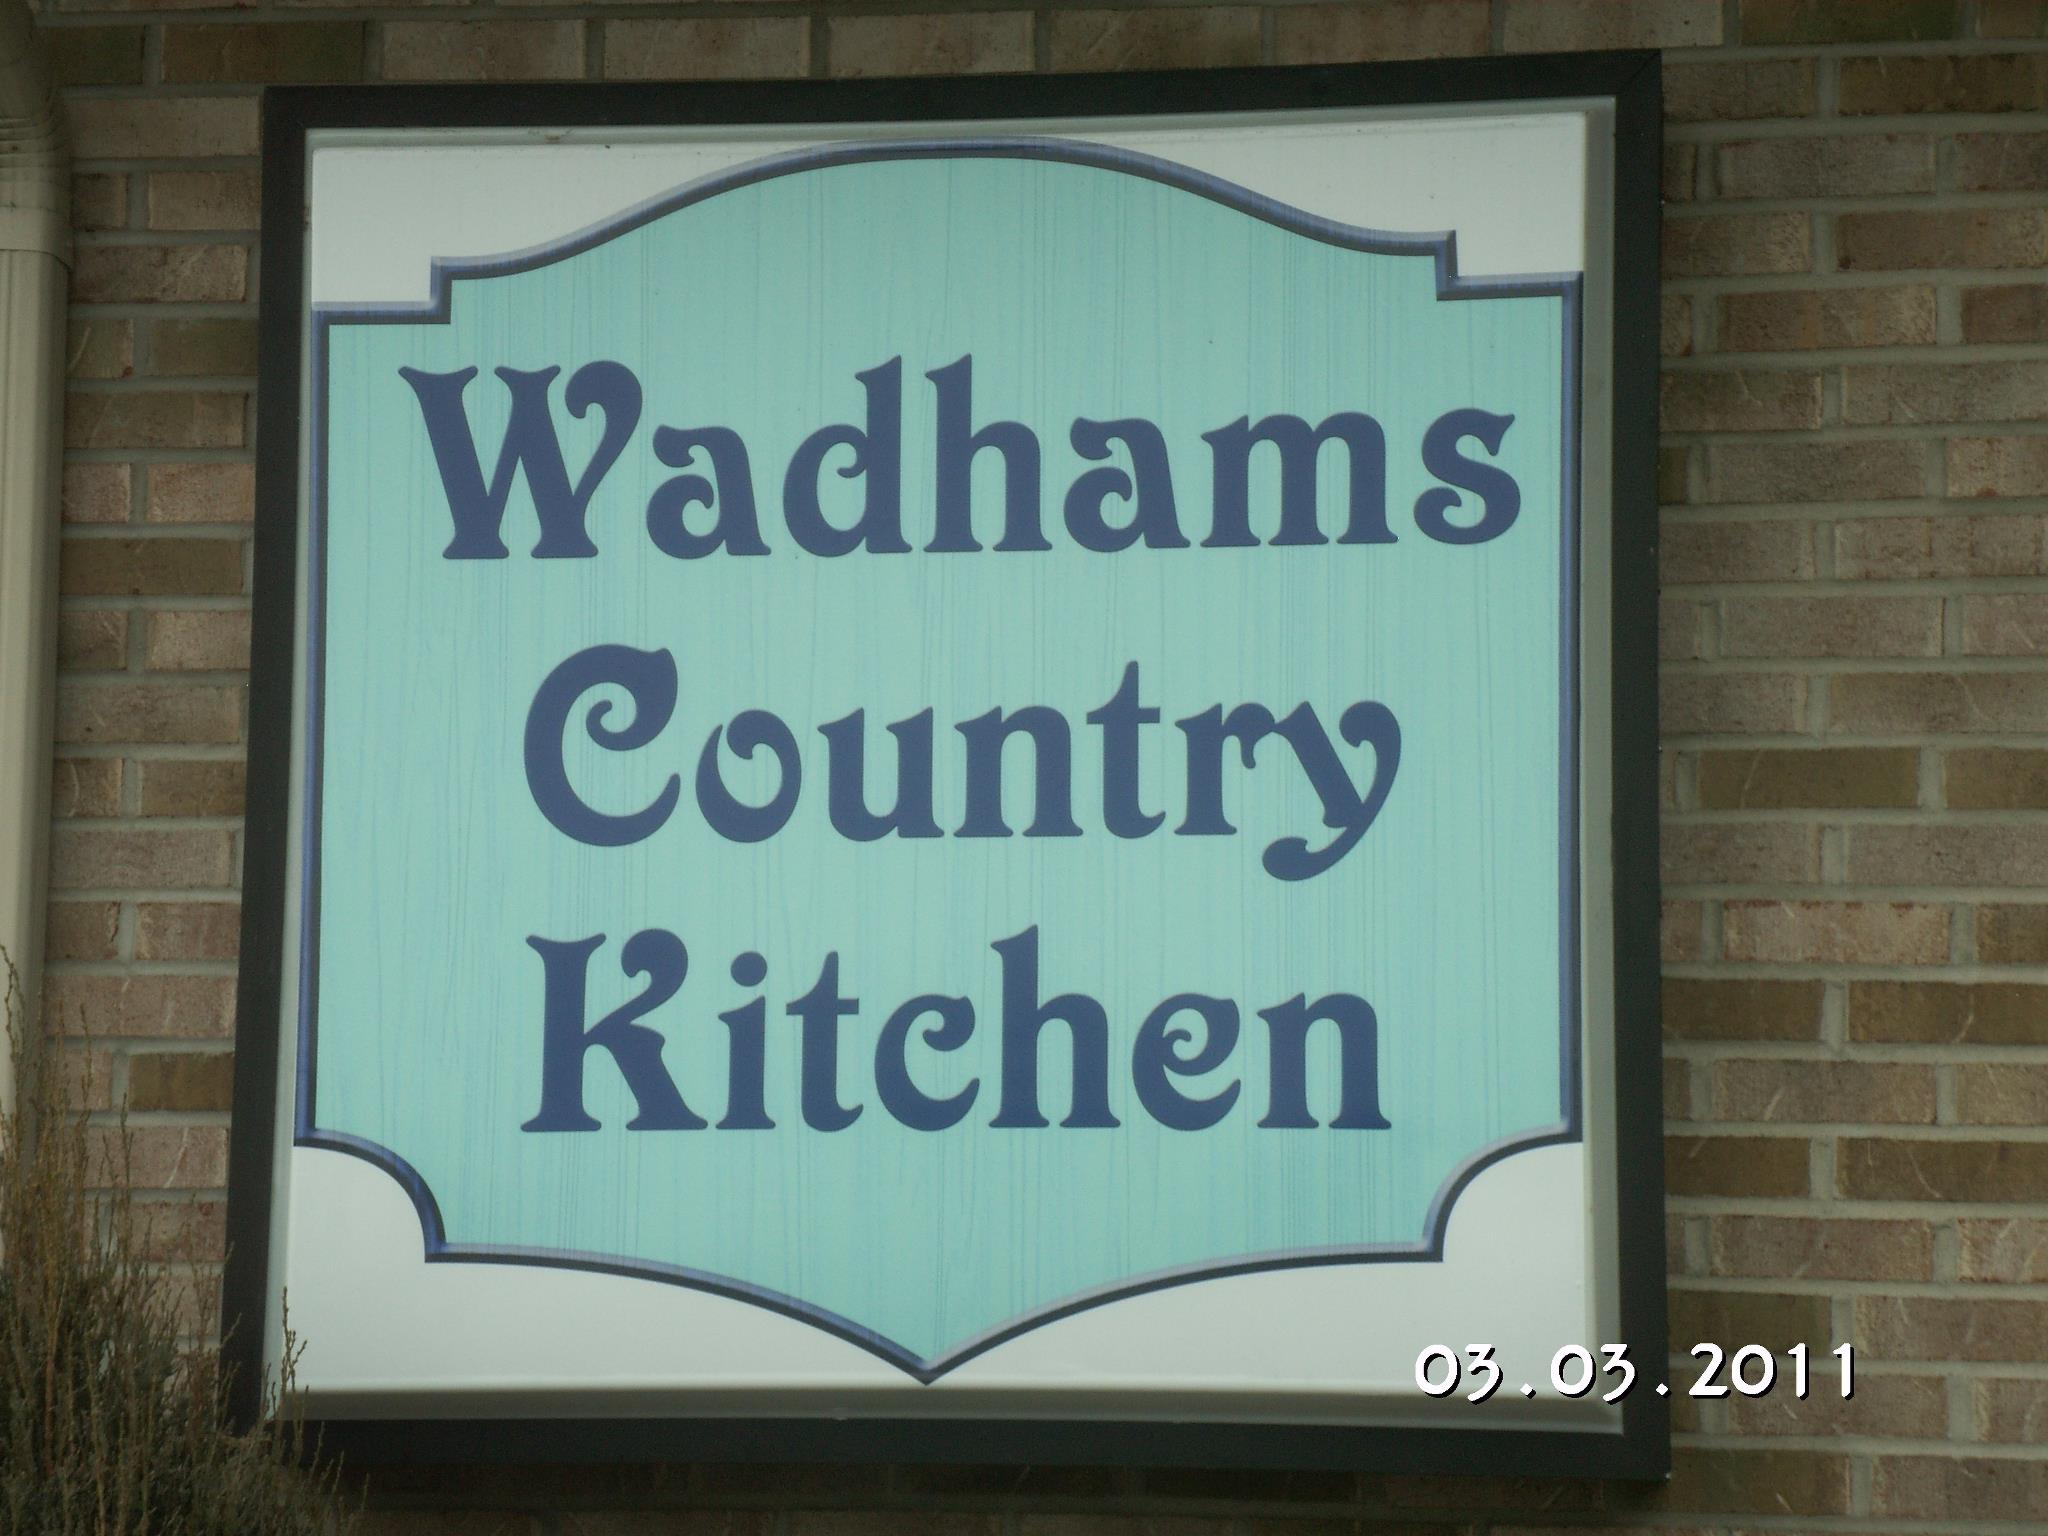 Wadhams Country Kitchen Inc